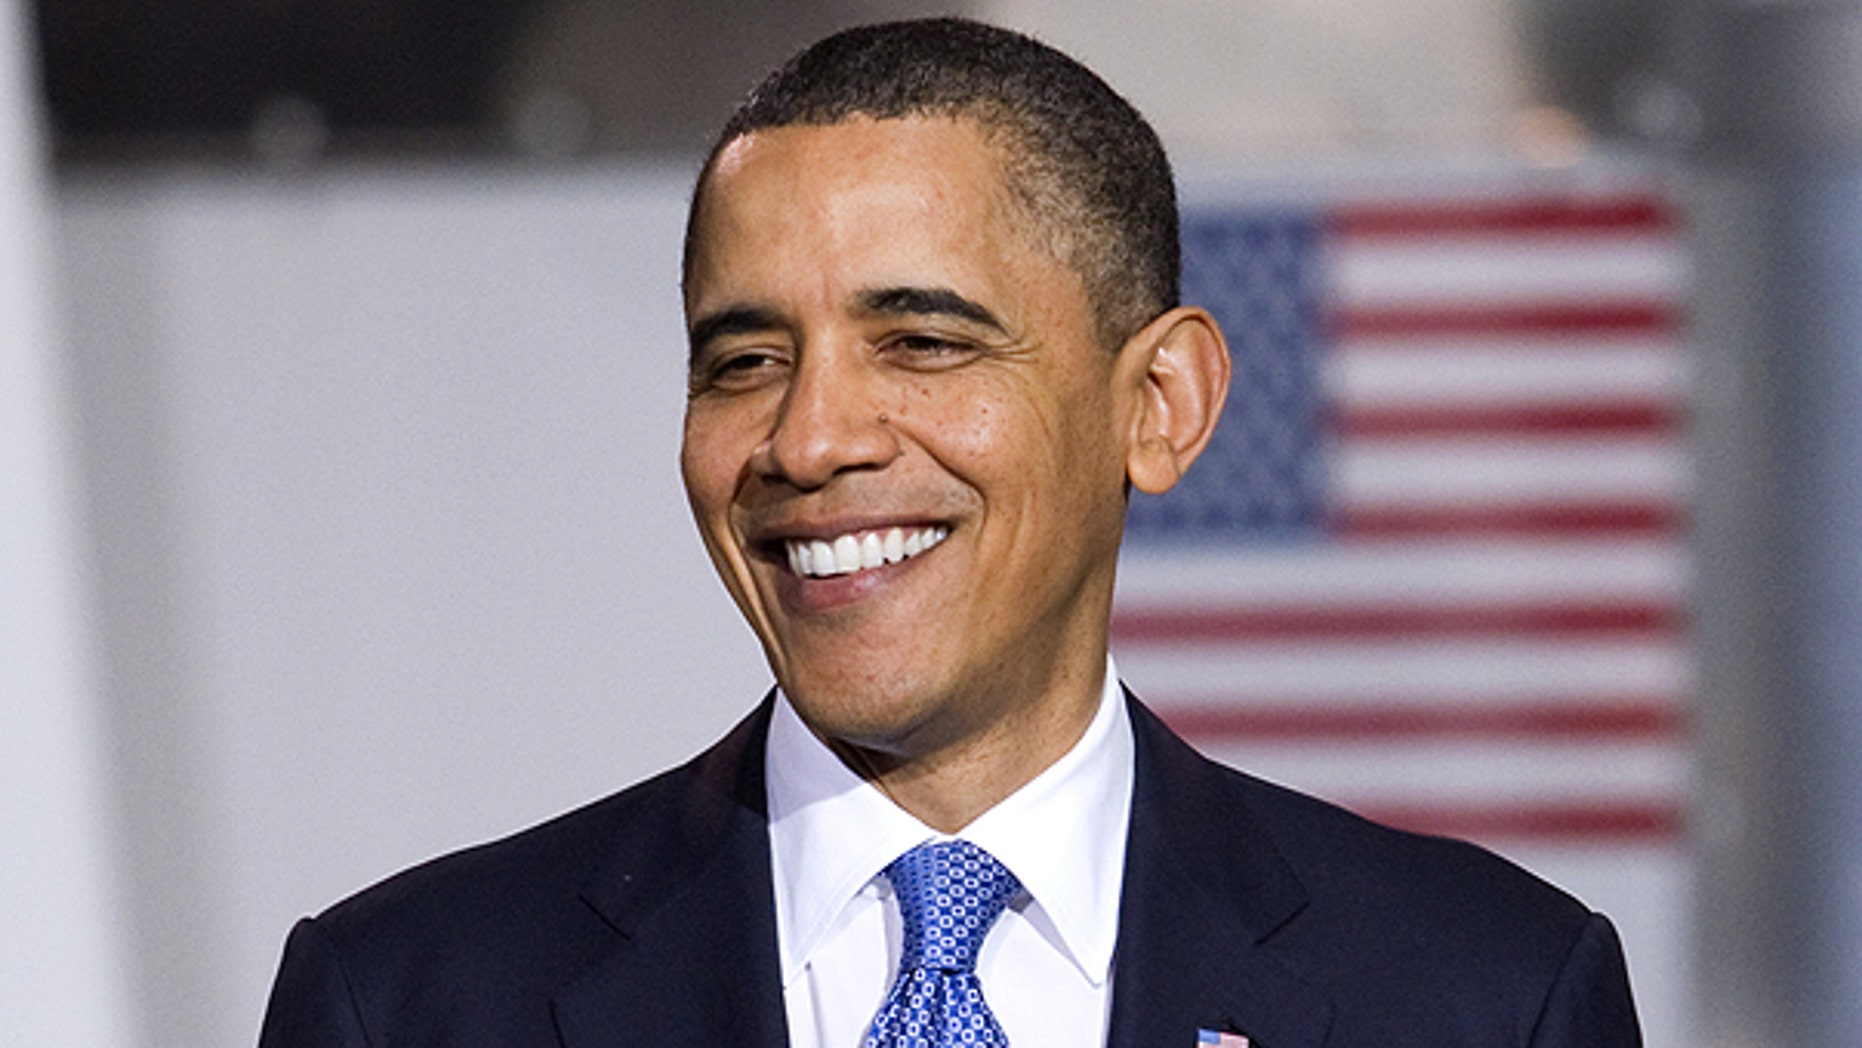 April 1: Obama smiles during an event to promote clean energy vehicles at a UPS facility in Landover, Md.